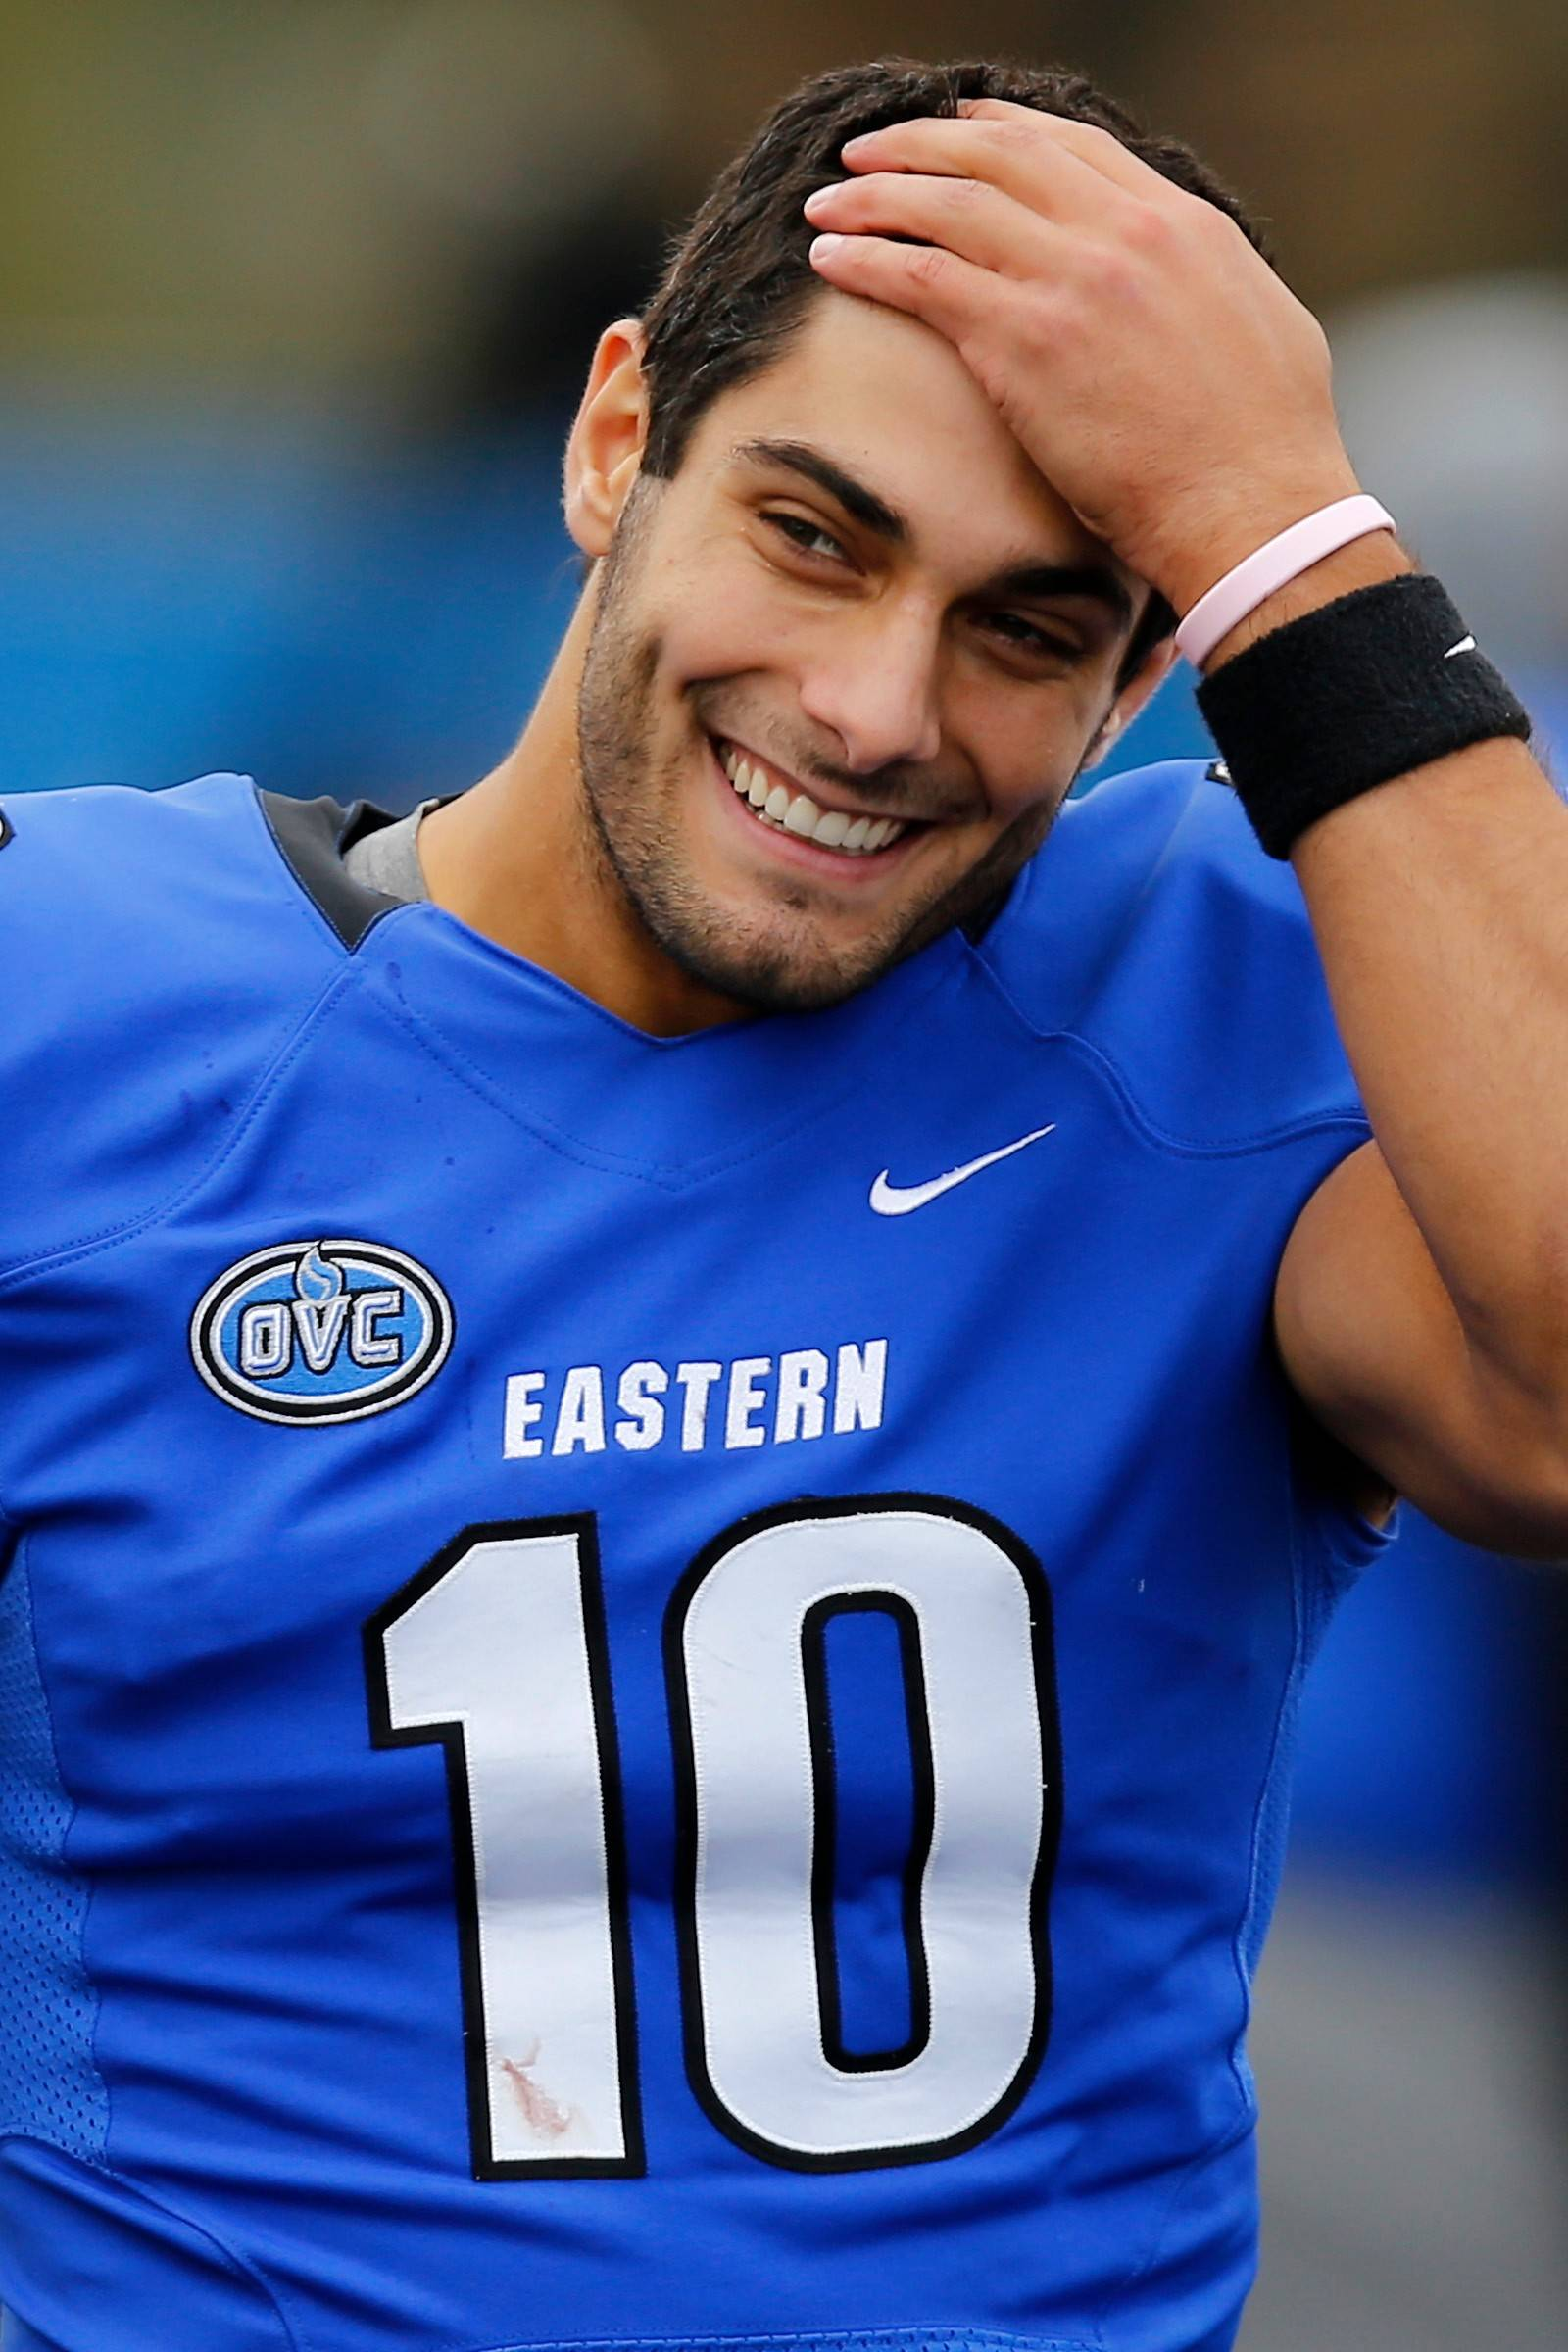 Quarterback Jimmy Garoppolo of Eastern Illinois University won the Walter Payton Award and was named to the FCS All-America team last December. A native of Arlington Heights, Garoppolo broke many of Tony Romo's college records.